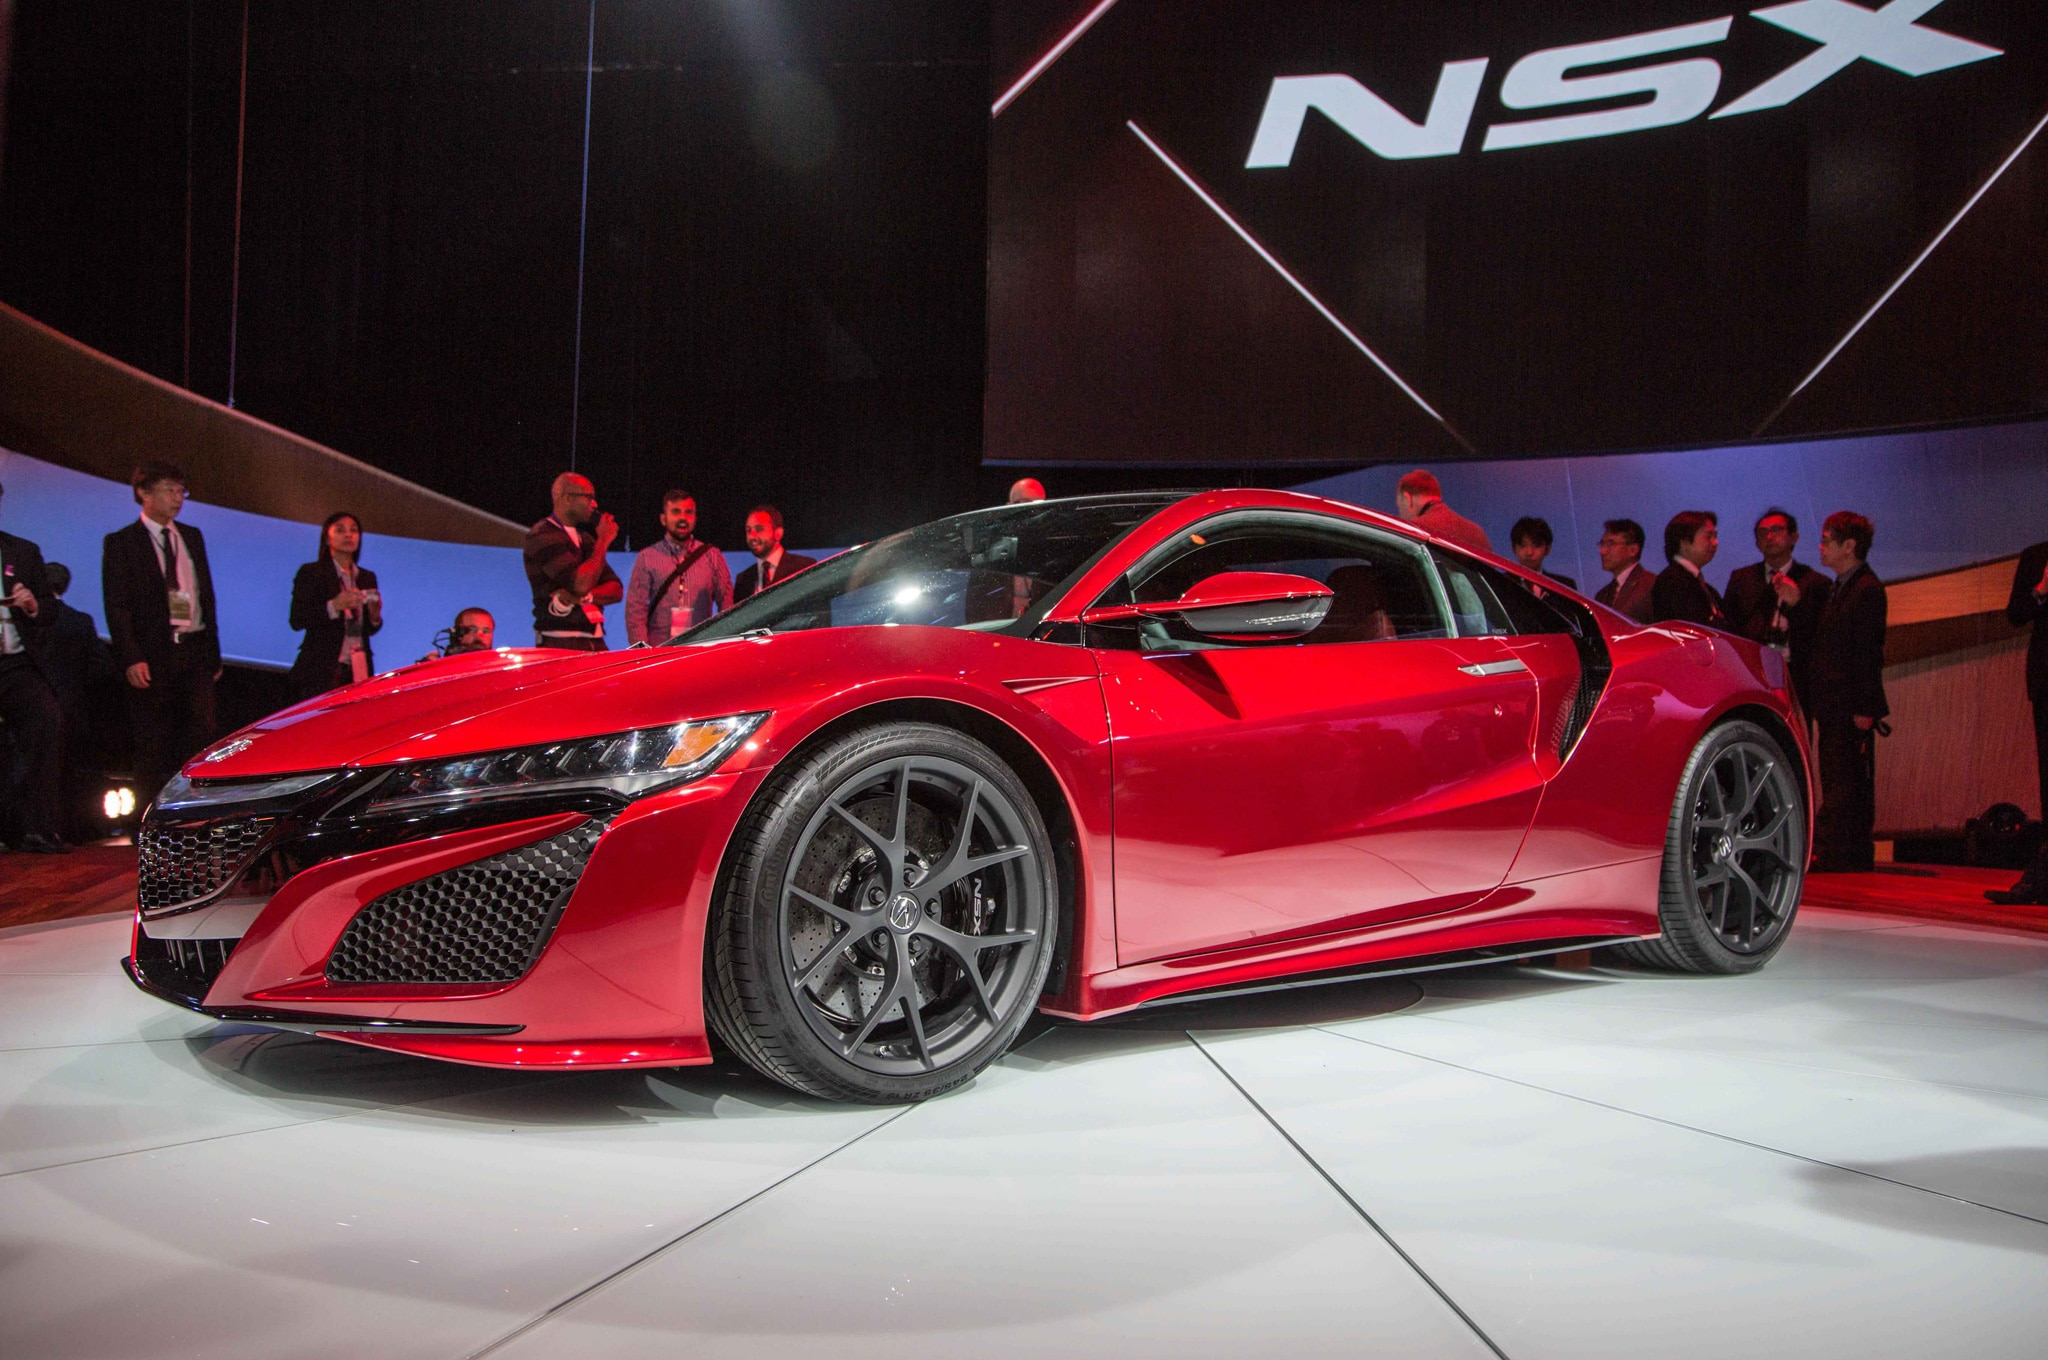 2016 acura nsx shows its fierce new 550 hp face in detroit. Black Bedroom Furniture Sets. Home Design Ideas